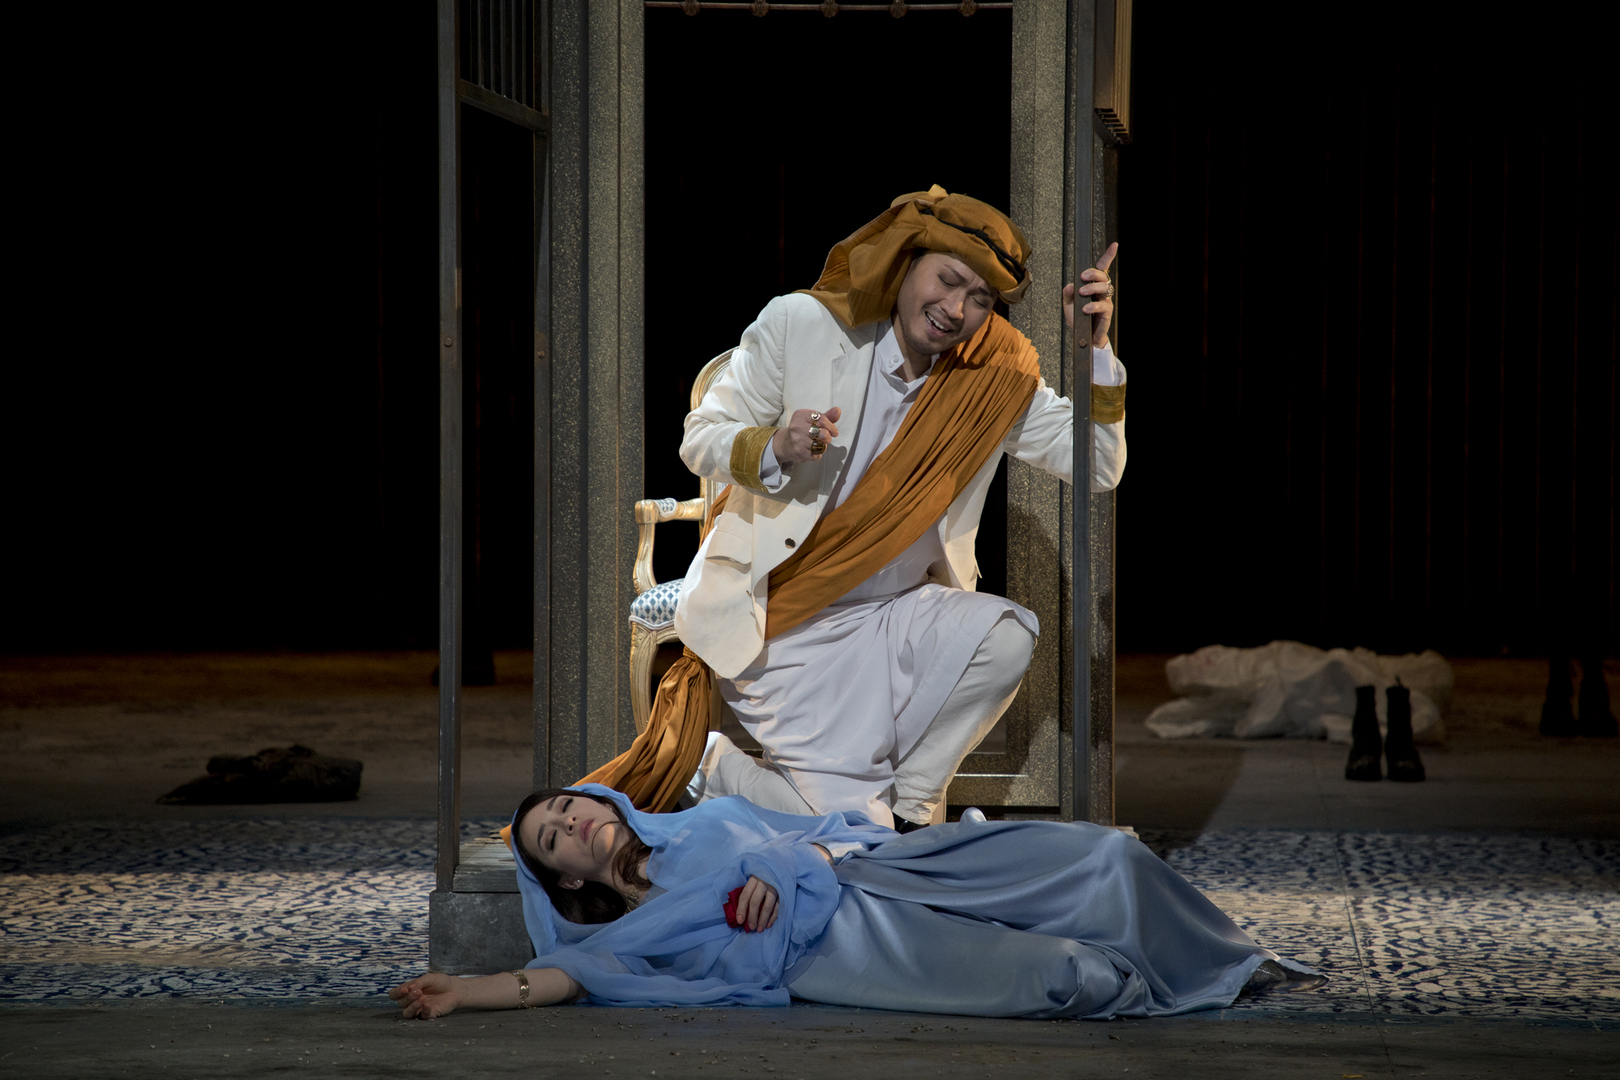 Mitridate-Opera-by-Porpora-Stage-Director-Jacopo-Spirei-7